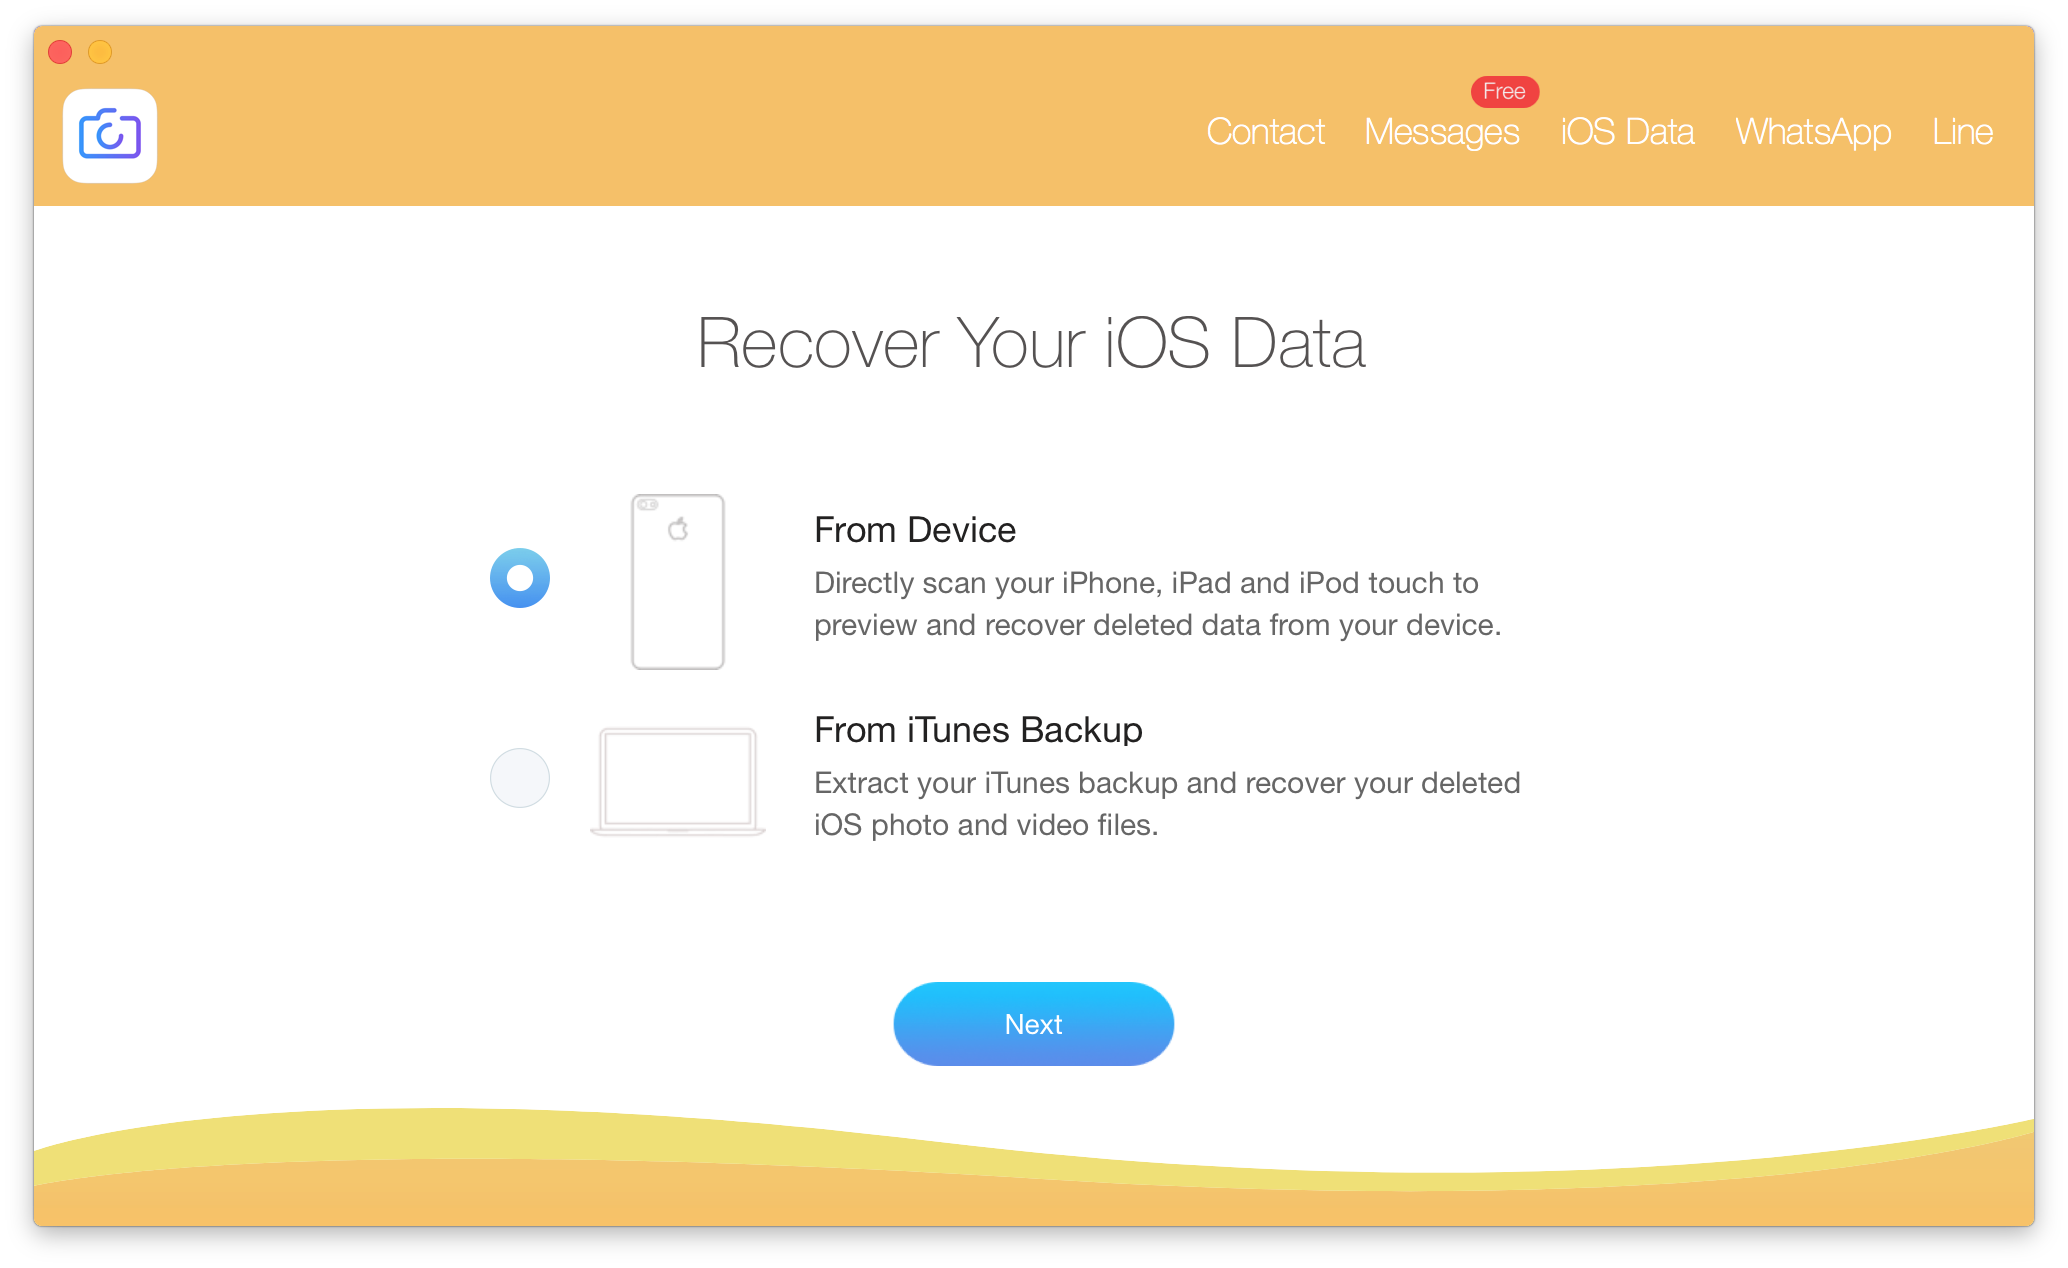 FREE] iPhone Photo Recovery - Retrieve Your Deleted iPhone